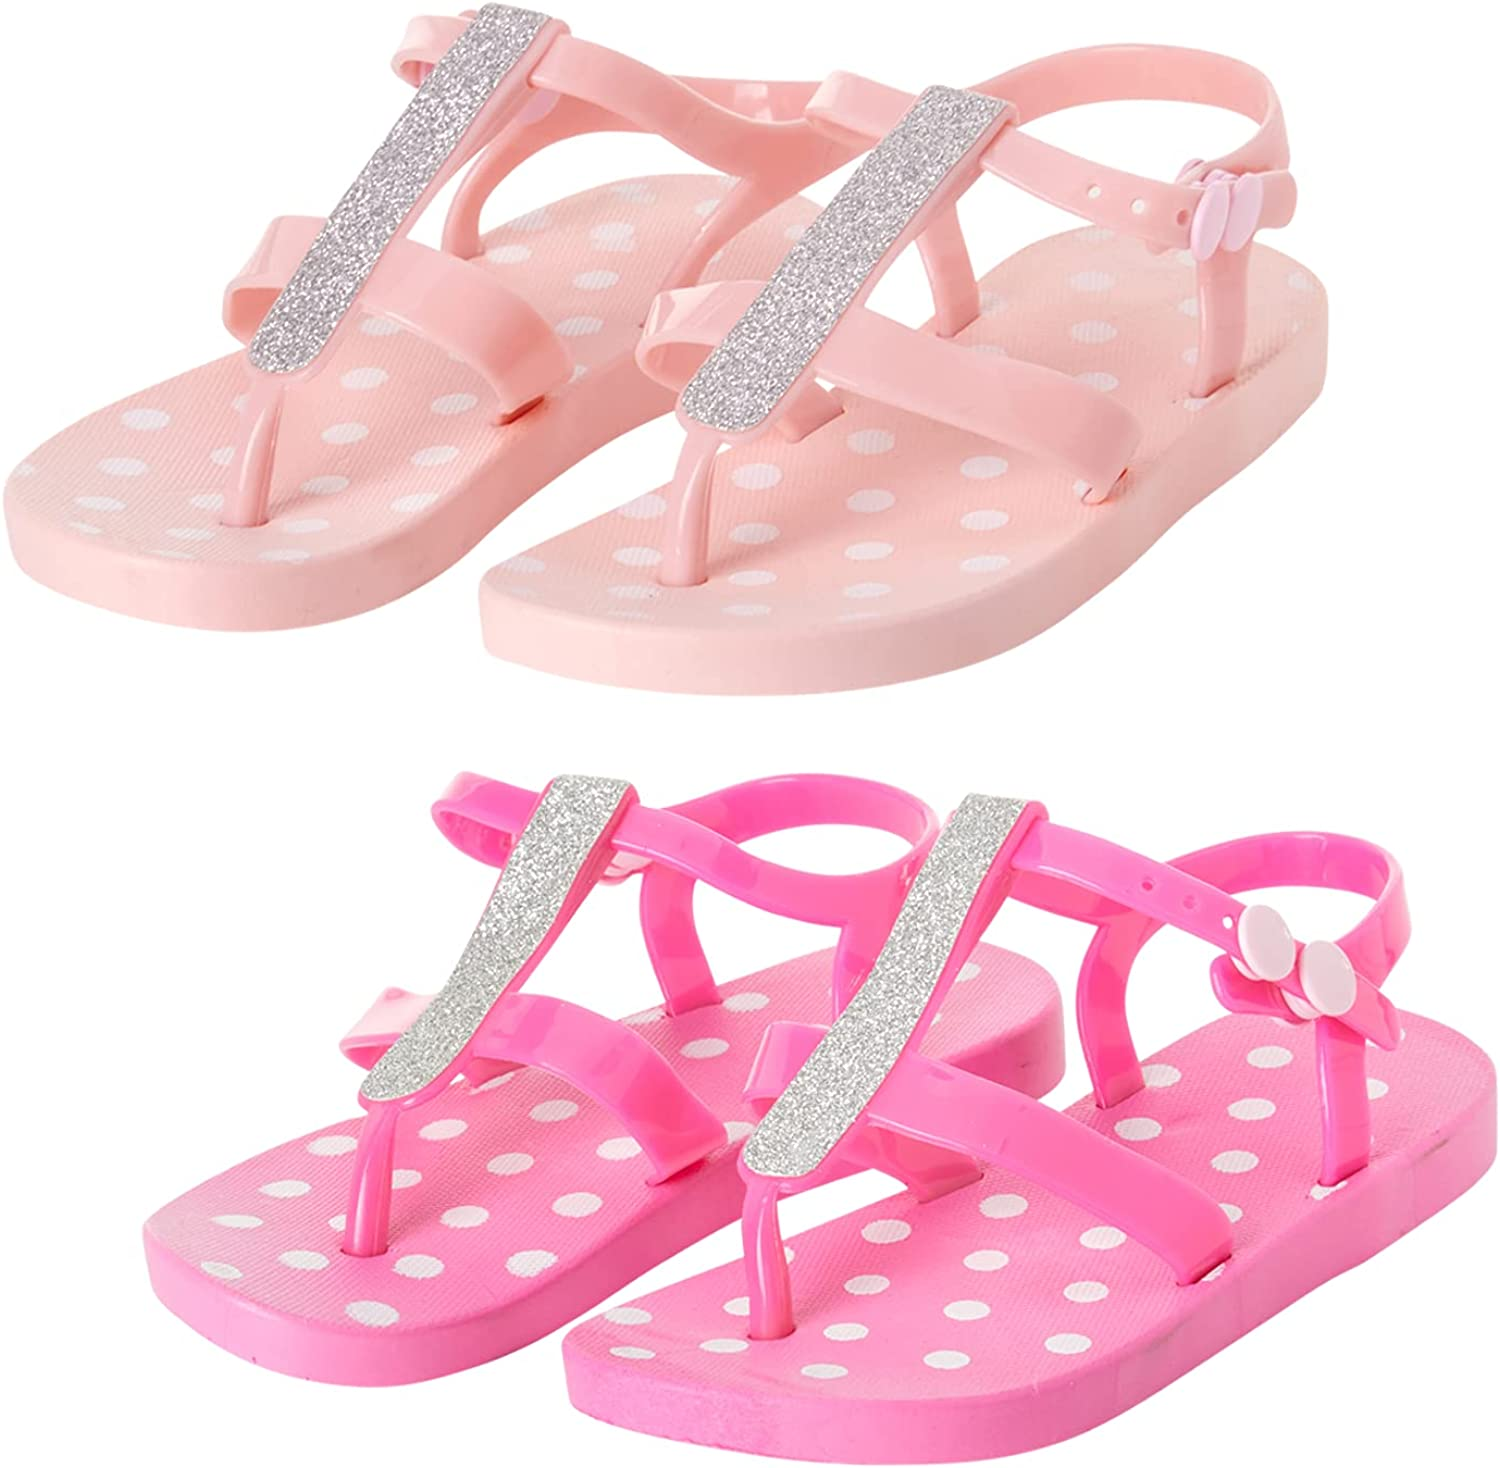 It is very popular dELiAs Girls' Sandals - 2 Rhinestone Buc Thong Pack with San Diego Mall